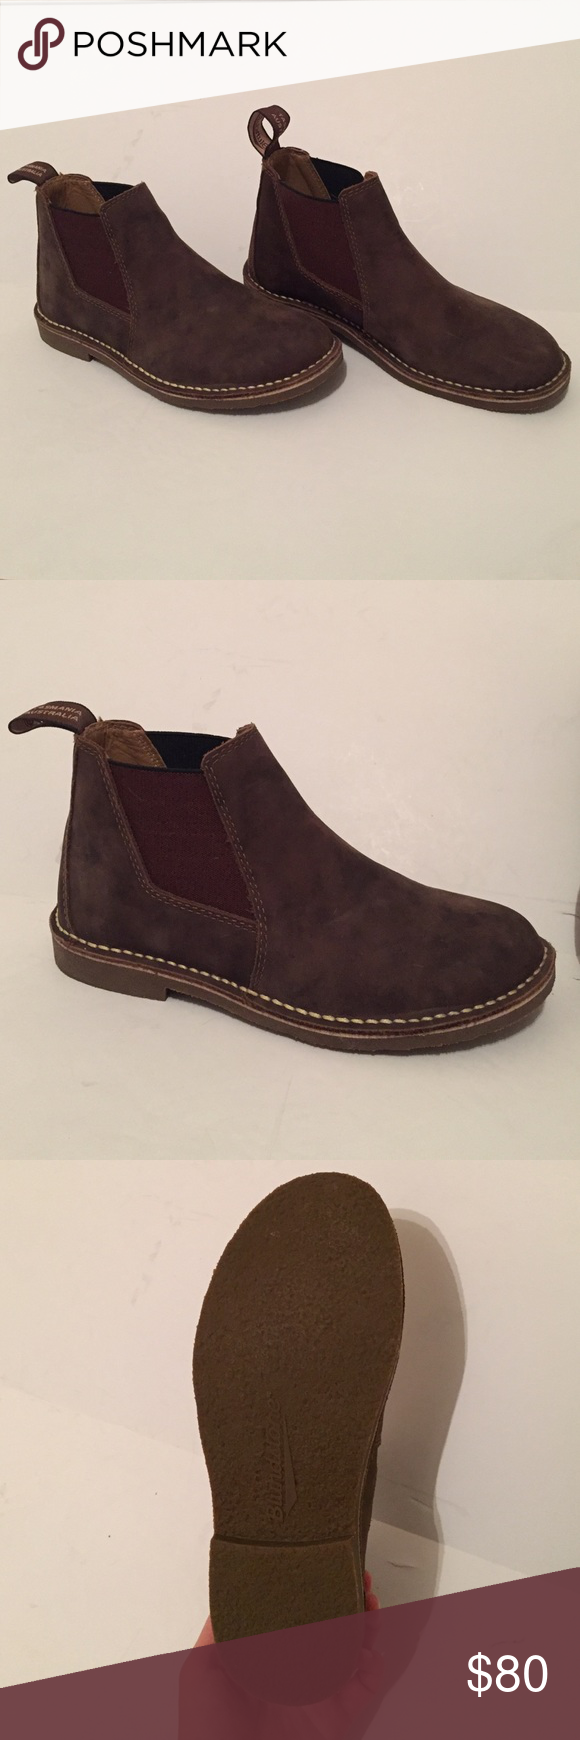 8209f16c0c0d NEW Blundstone Casual Series  1314 Rustic Brown Premium Leather from Blundstone s  casual series. Wanted